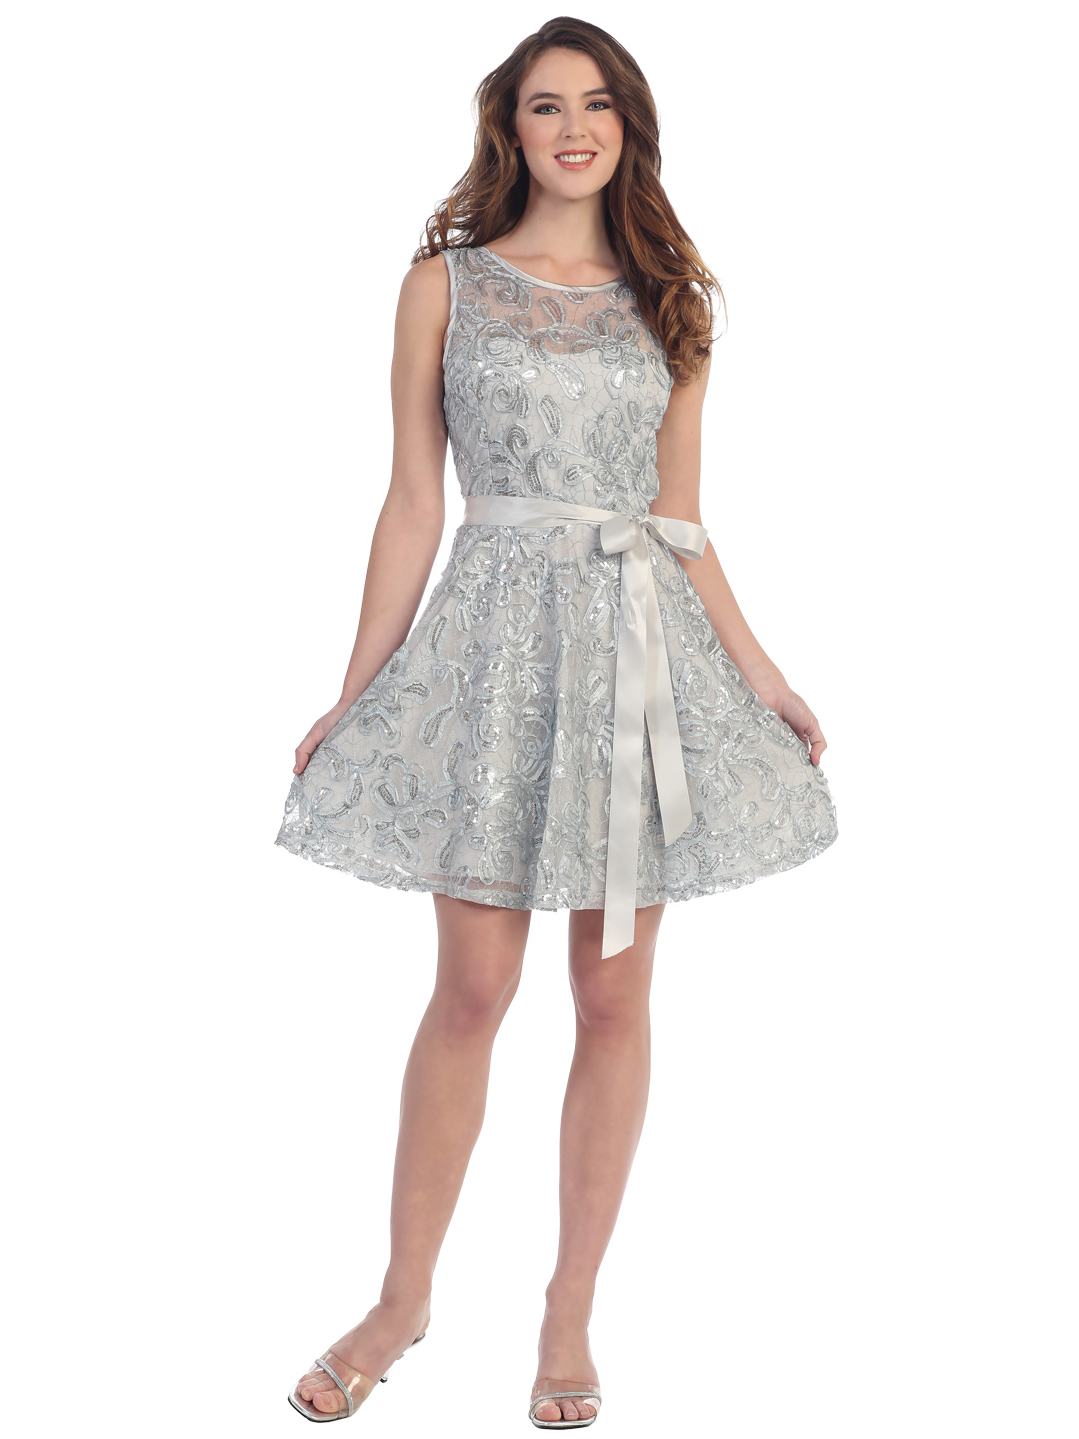 Wedding Silver Cocktail Dress sleeveless lace short cocktail dress sung boutique l a sf 8816 silver front view medium